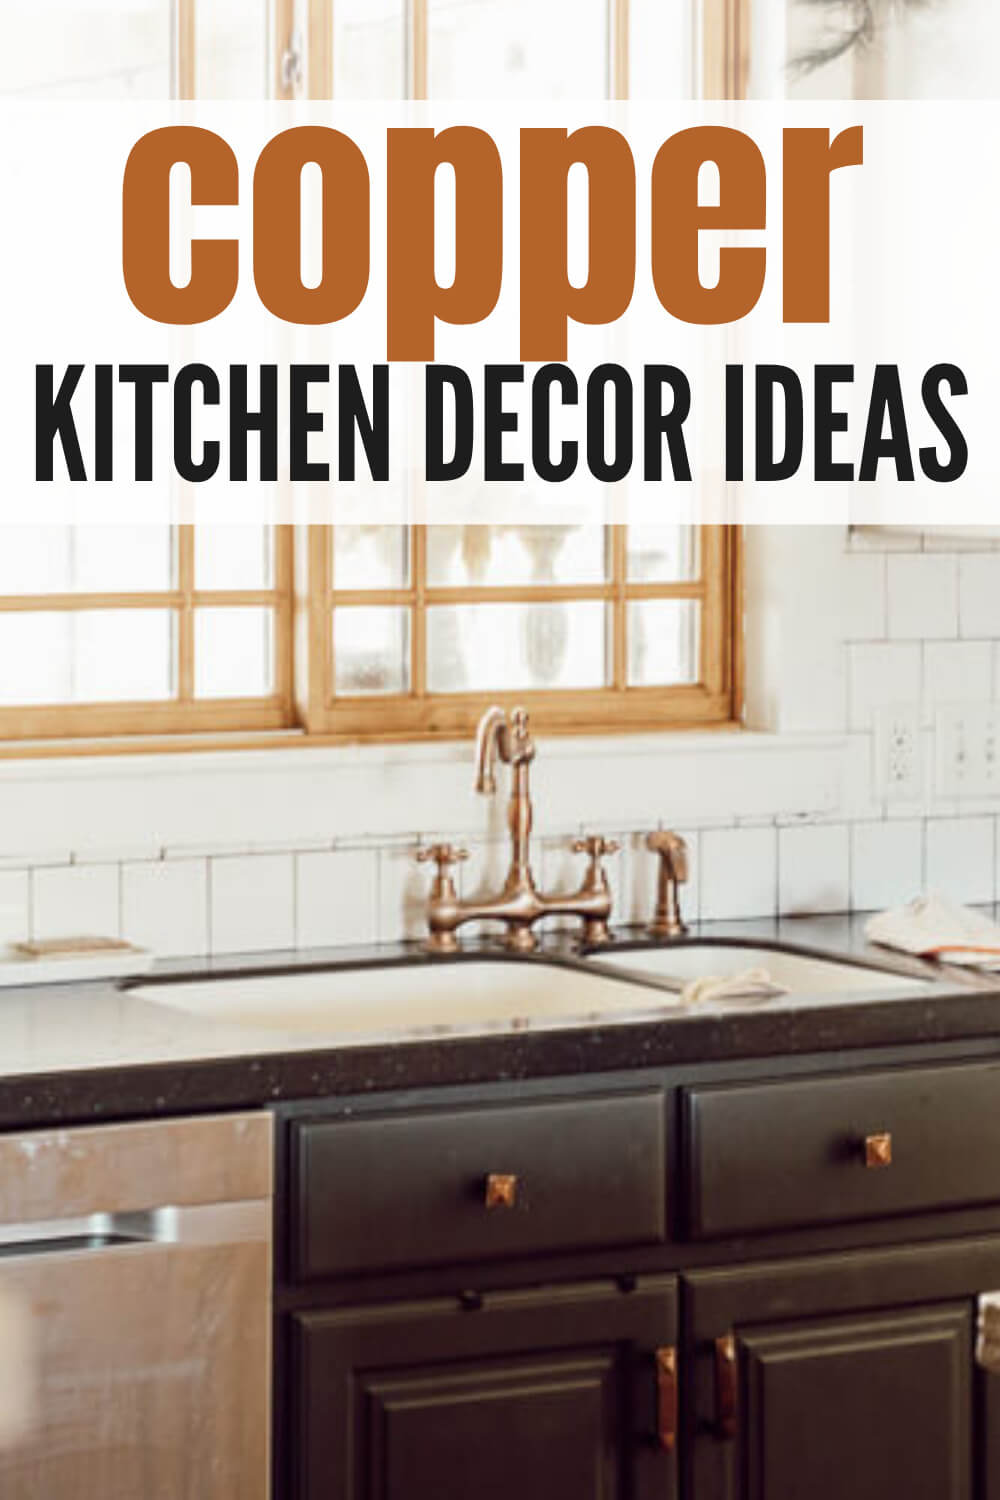 How to effectively incorporate copper into your kitchen with these awesome copper kitchen decorating ideas. There are so many options!